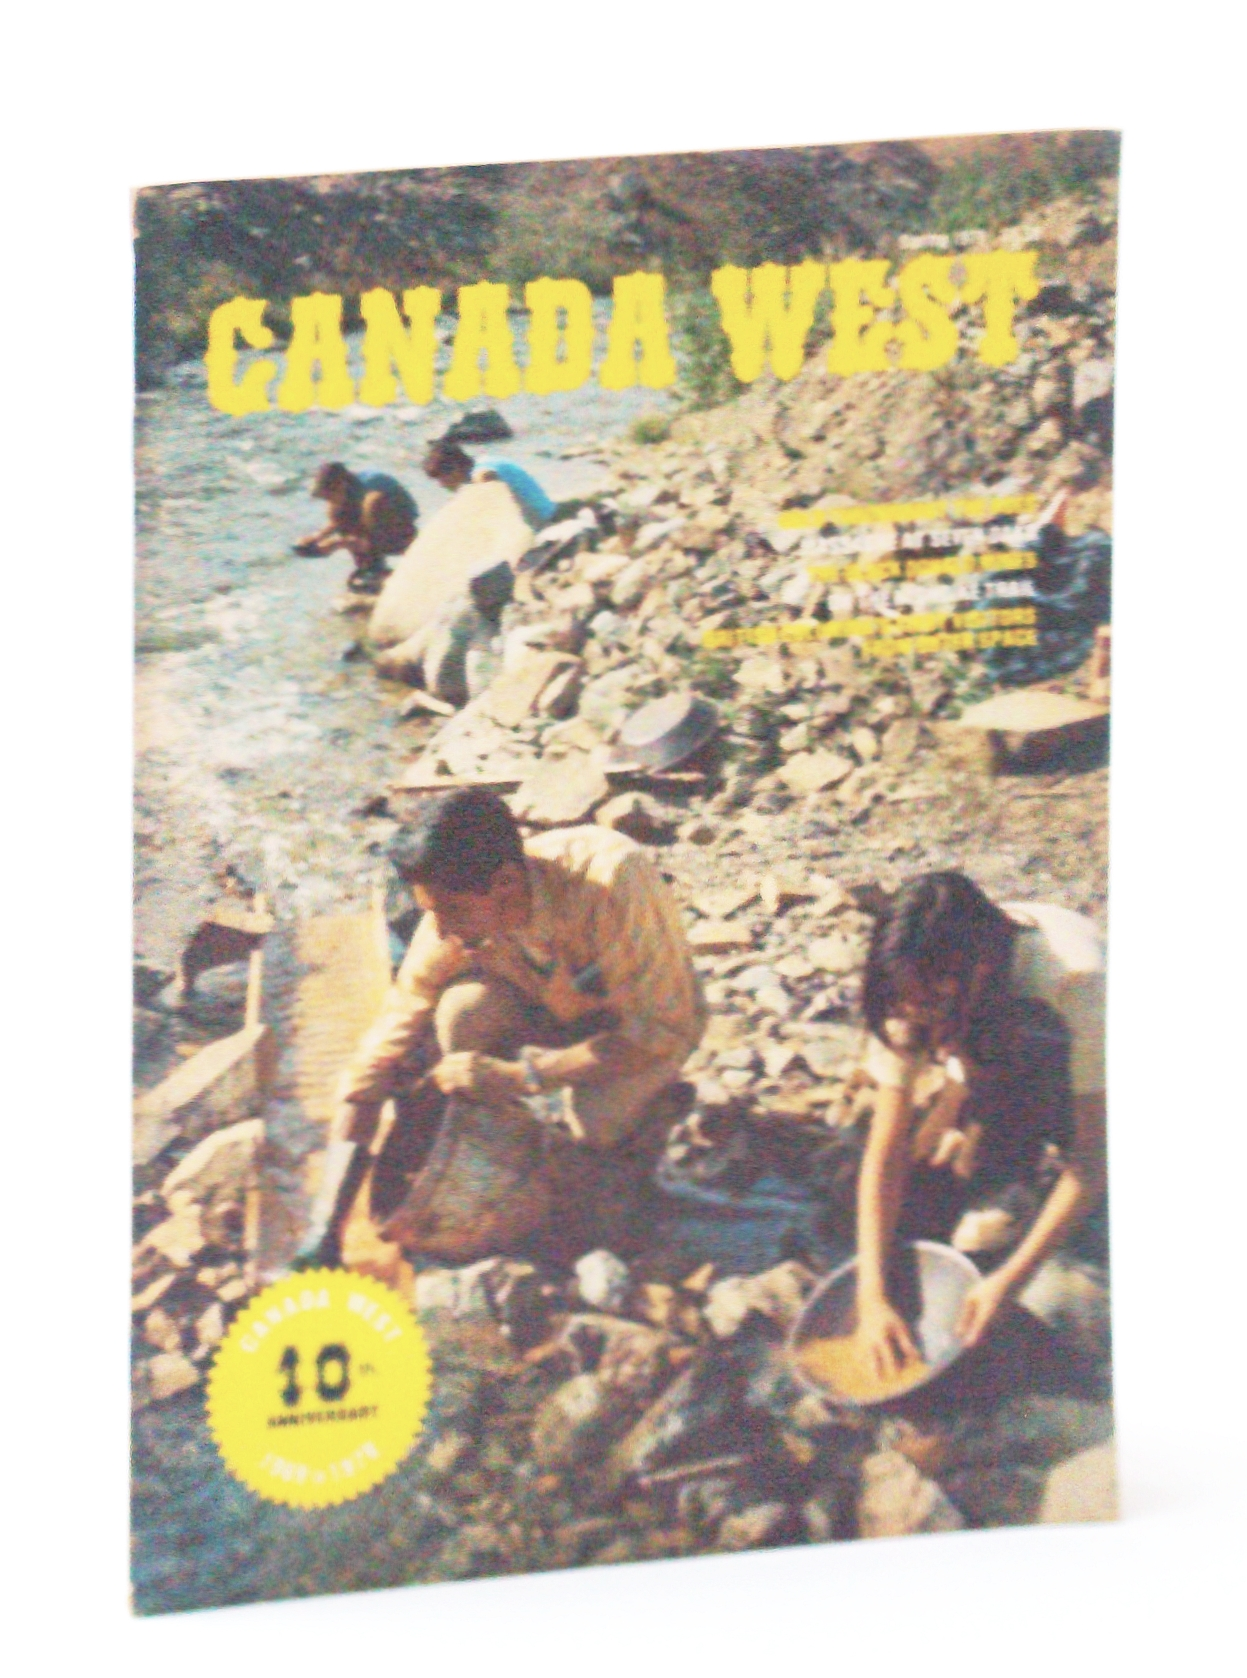 Image for Canada West Magazine - The Pioneer Years, Spring 1979, Volume 9, Number 1, Collector's Number 33